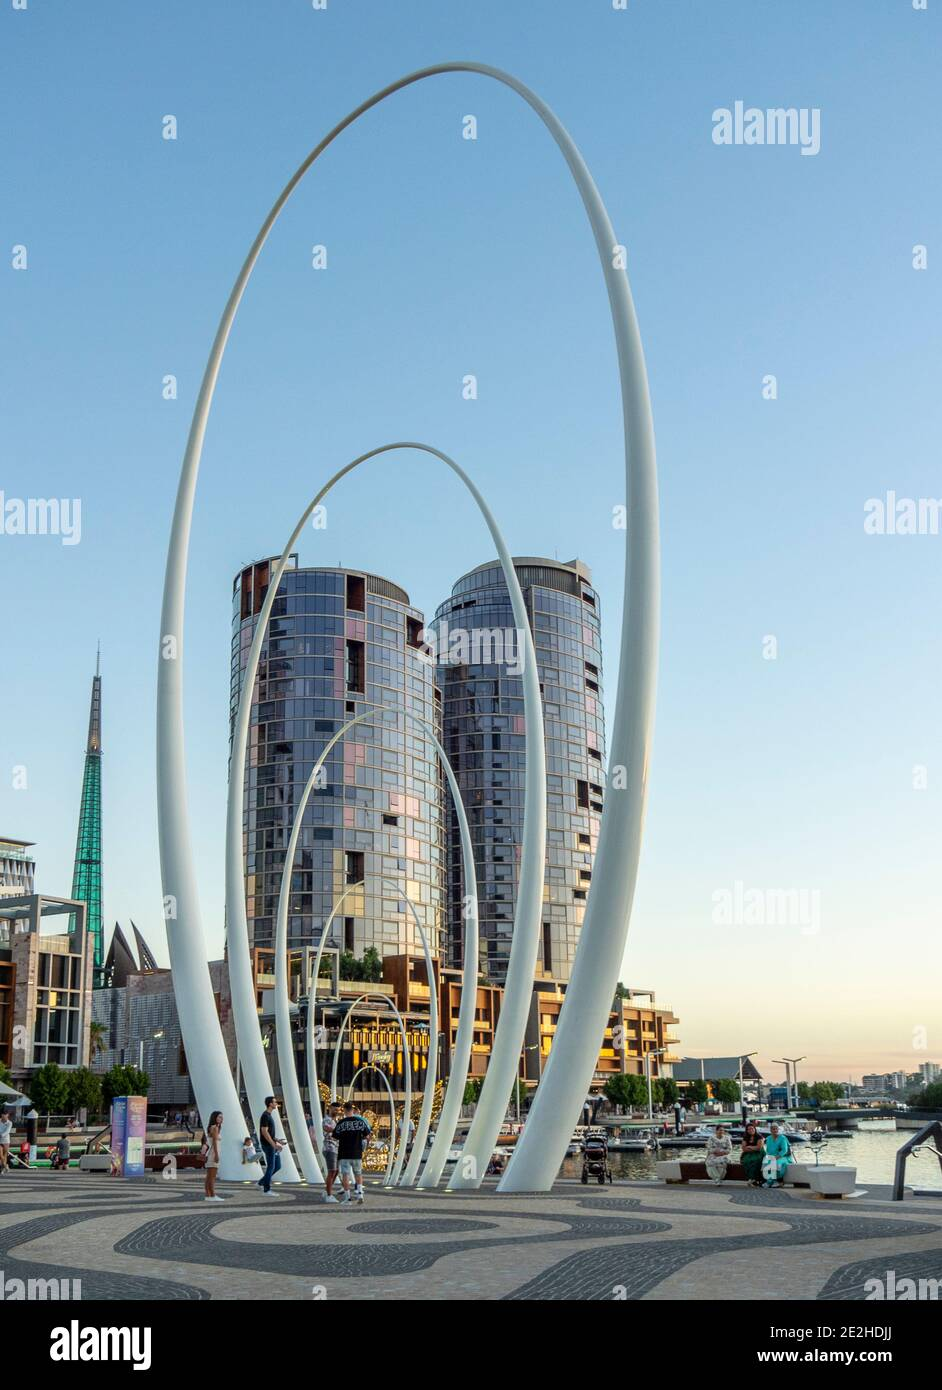 High rise residential towers and sculpture Spanda at Elizabeth Quay The Esplanade Perth Western Australia Stock Photo